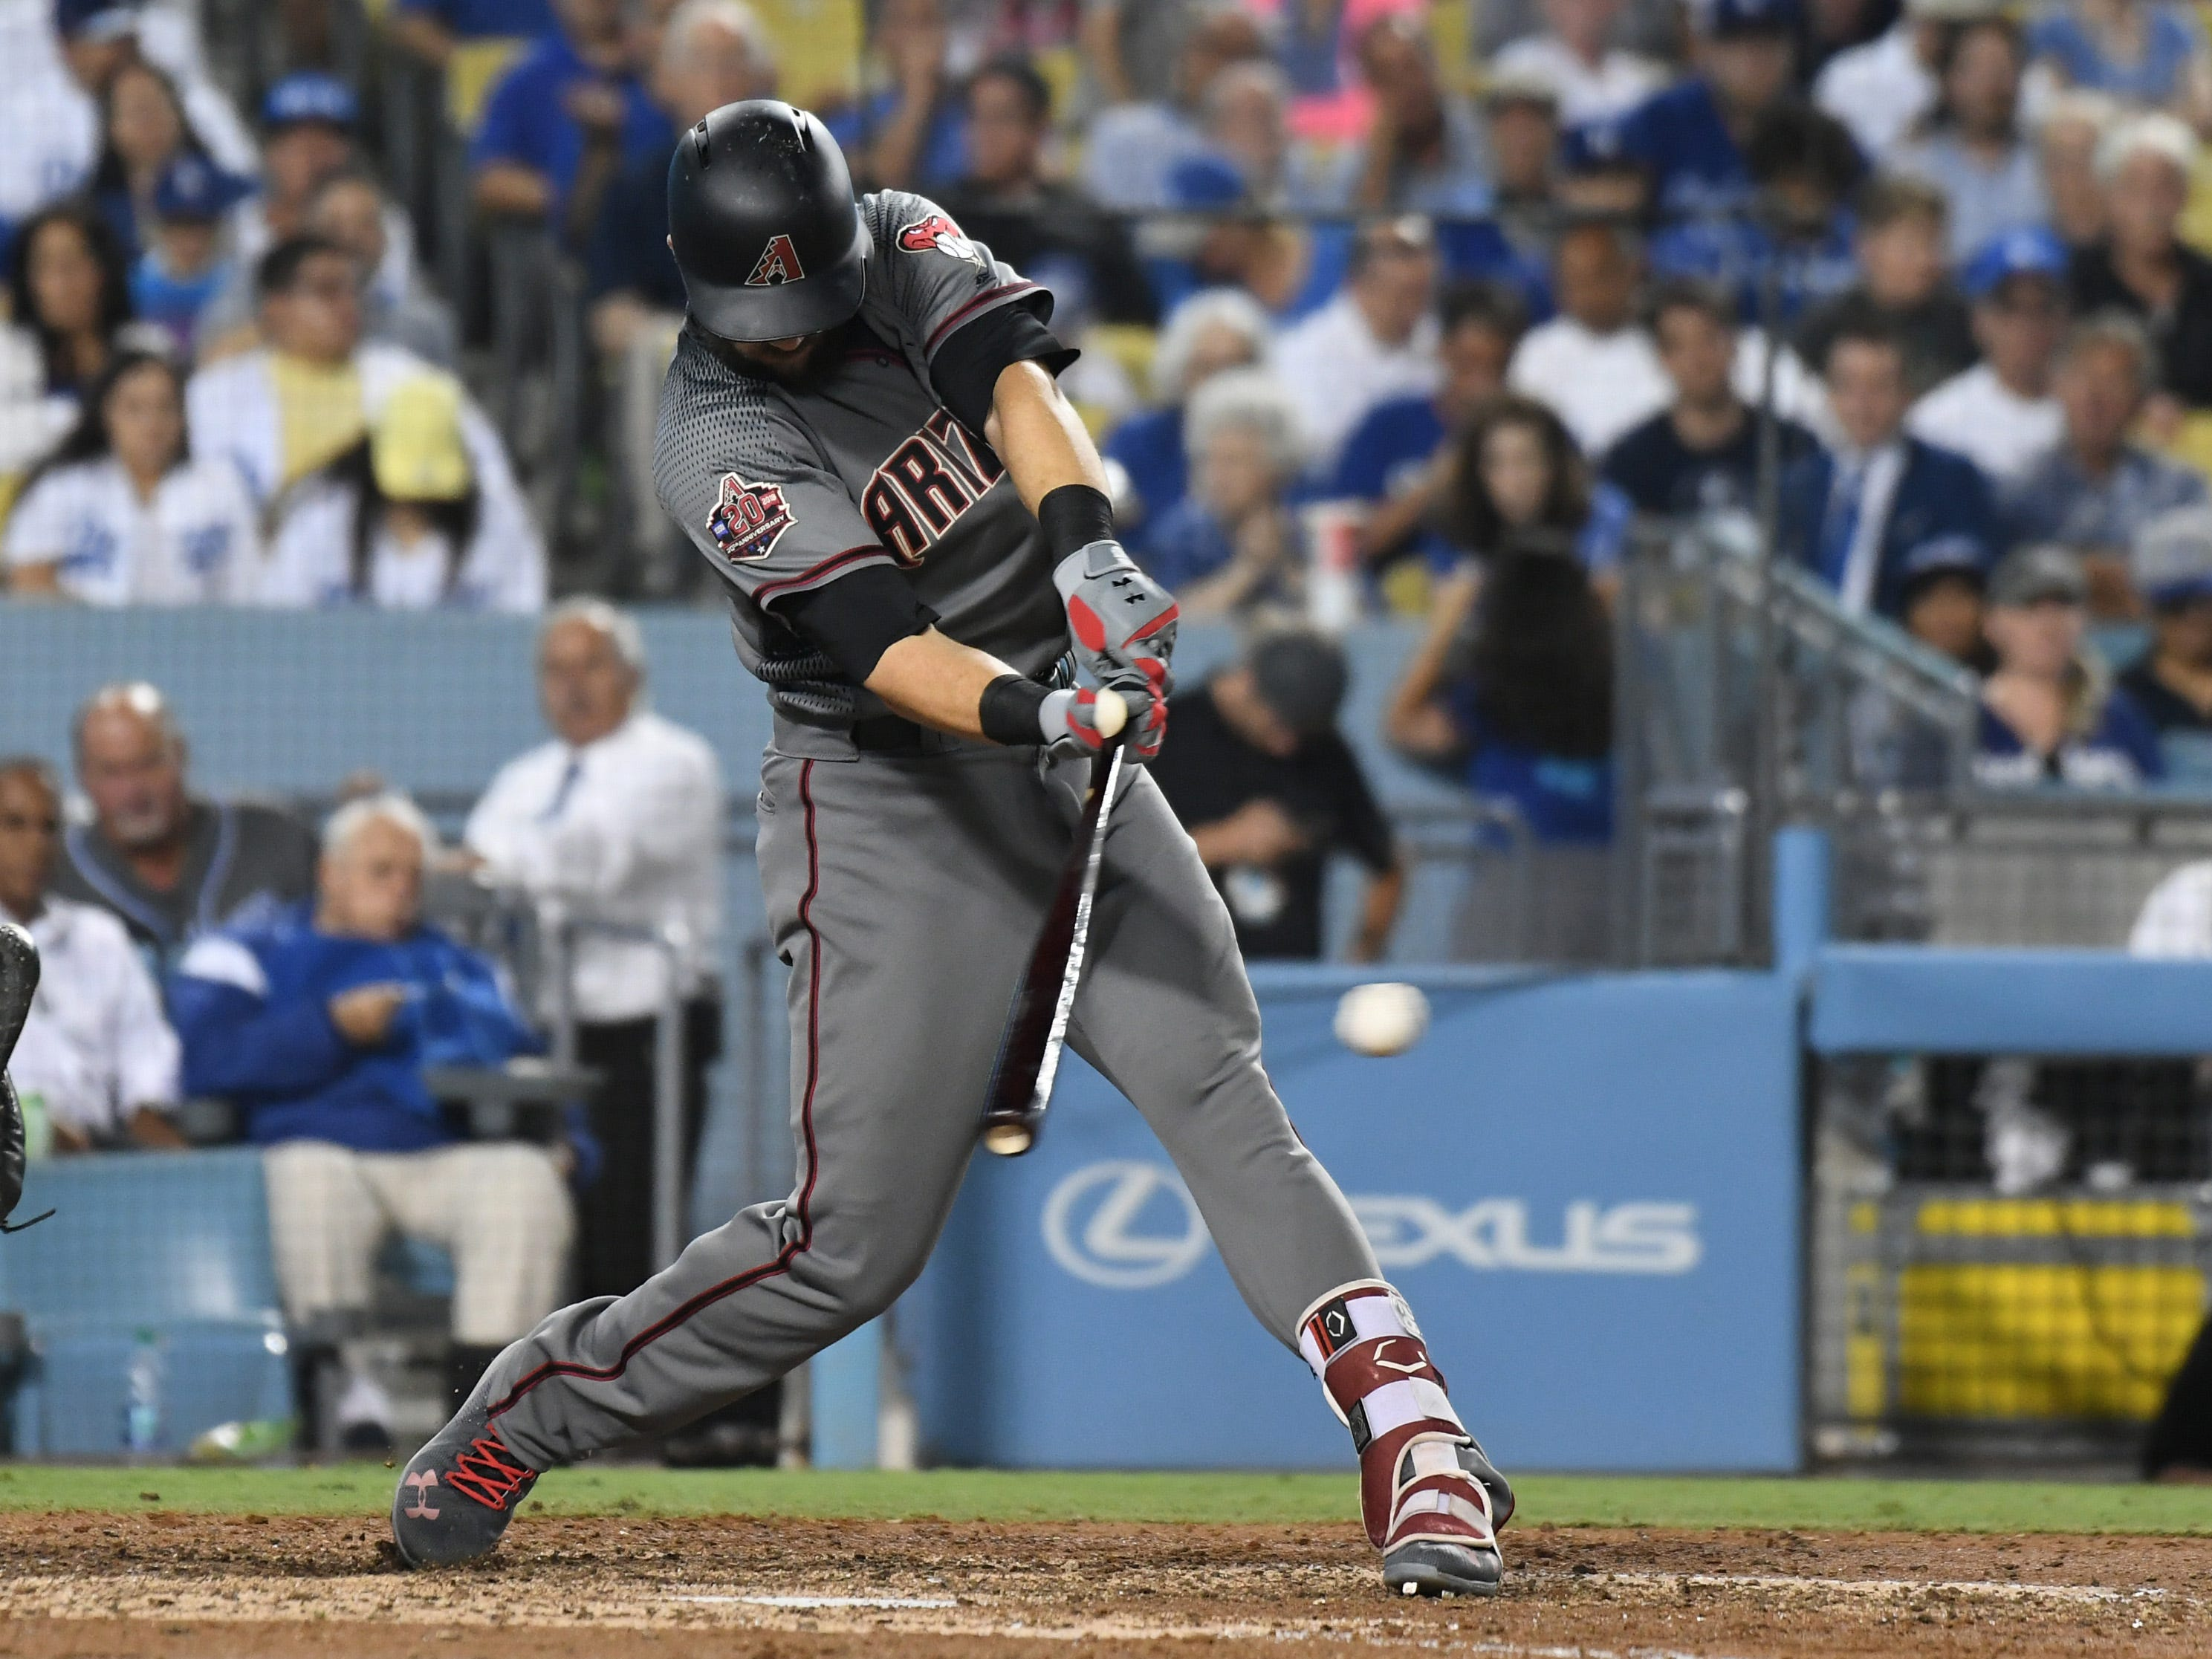 Aug 30, 2018; Los Angeles, CA, USA; Arizona Diamondbacks right fielder Steven Souza Jr. (28) hits a single against the Los Angeles Dodgers in the fifth inning at Dodger Stadium. Mandatory Credit: Richard Mackson-USA TODAY Sports